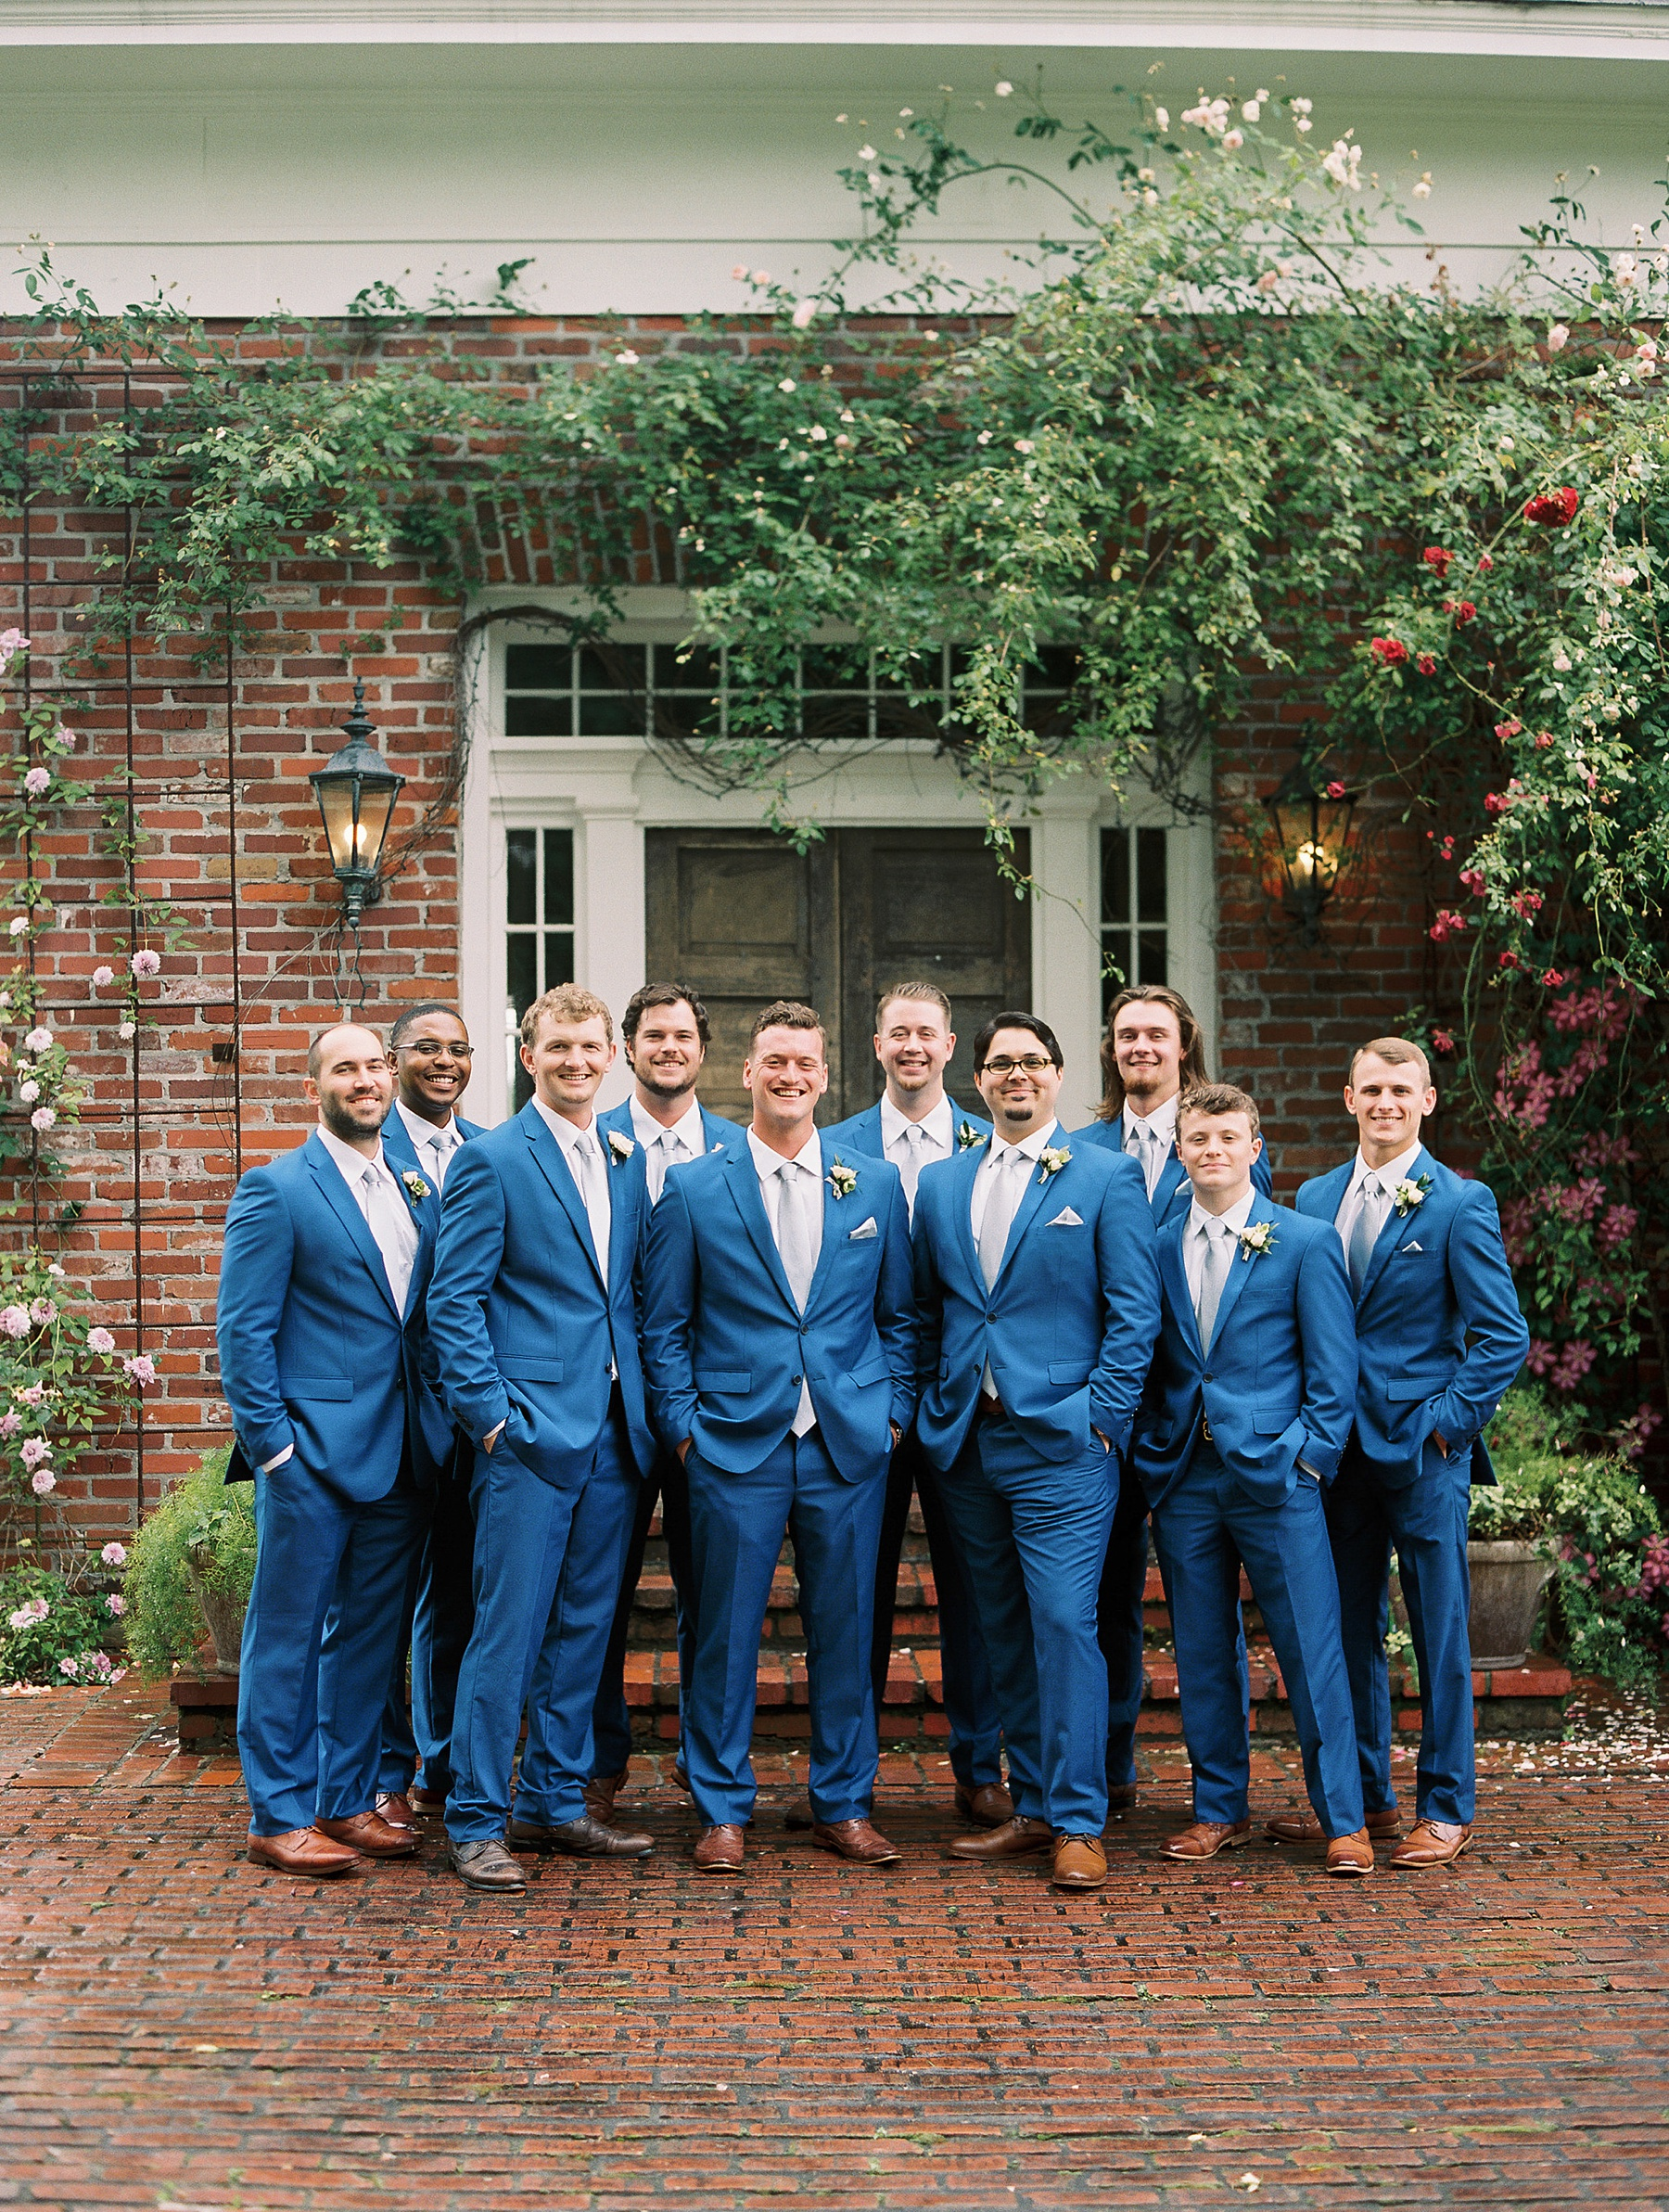 Hedge Farm Weddings Tennessee Wedding Photographer_0589.jpg